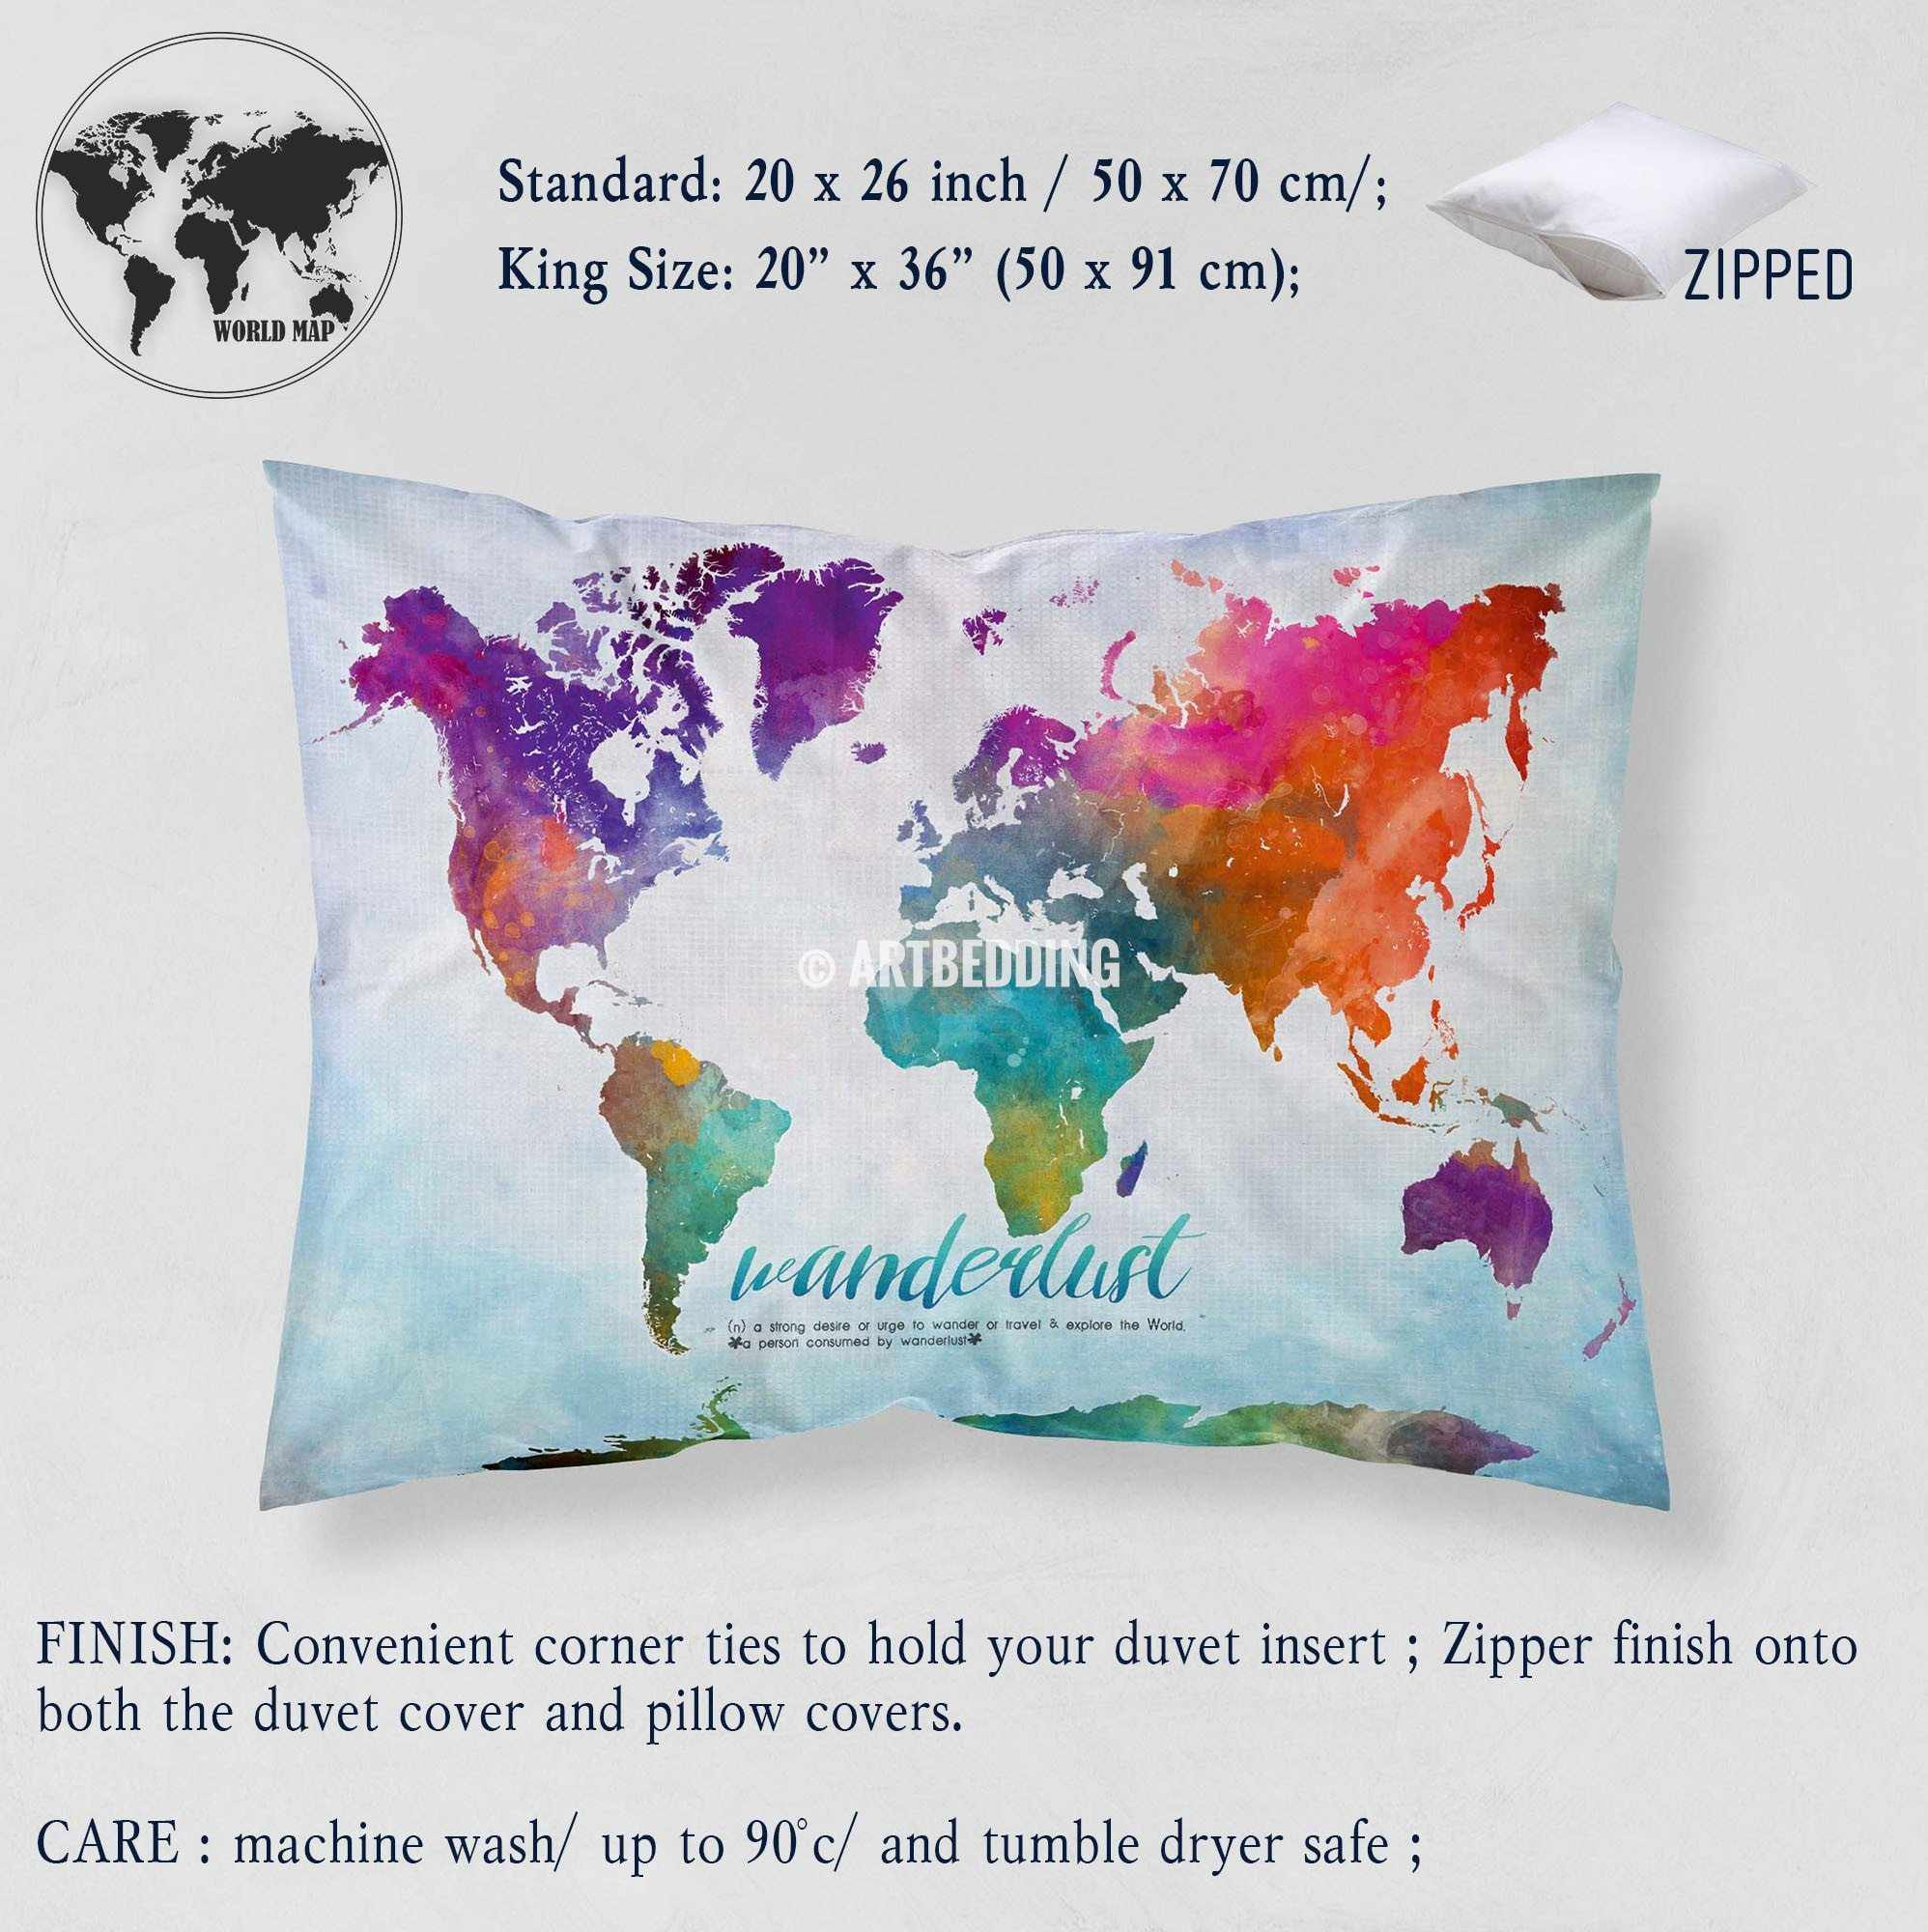 Watercolor map bedding wanderlust bedding world map art duvet wanderlust world map watercolor print bedding world map art duvet cover set bohemian duvet gumiabroncs Gallery